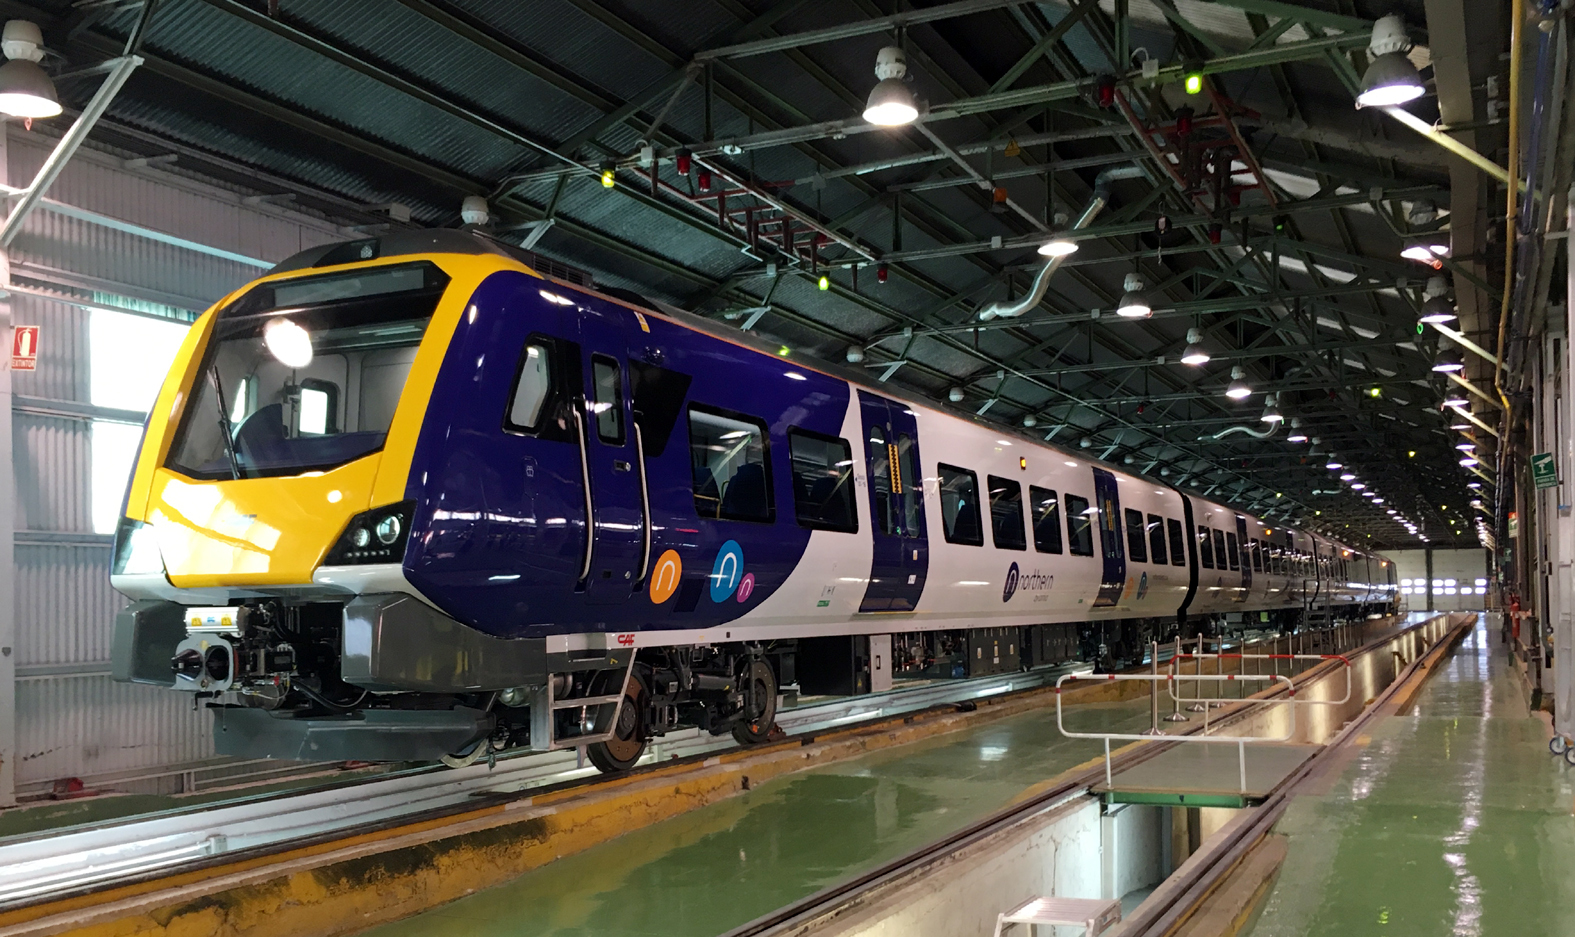 Northern Rail's new fleet of trains under construction at the CAF factory in Zaragoza, Spain.